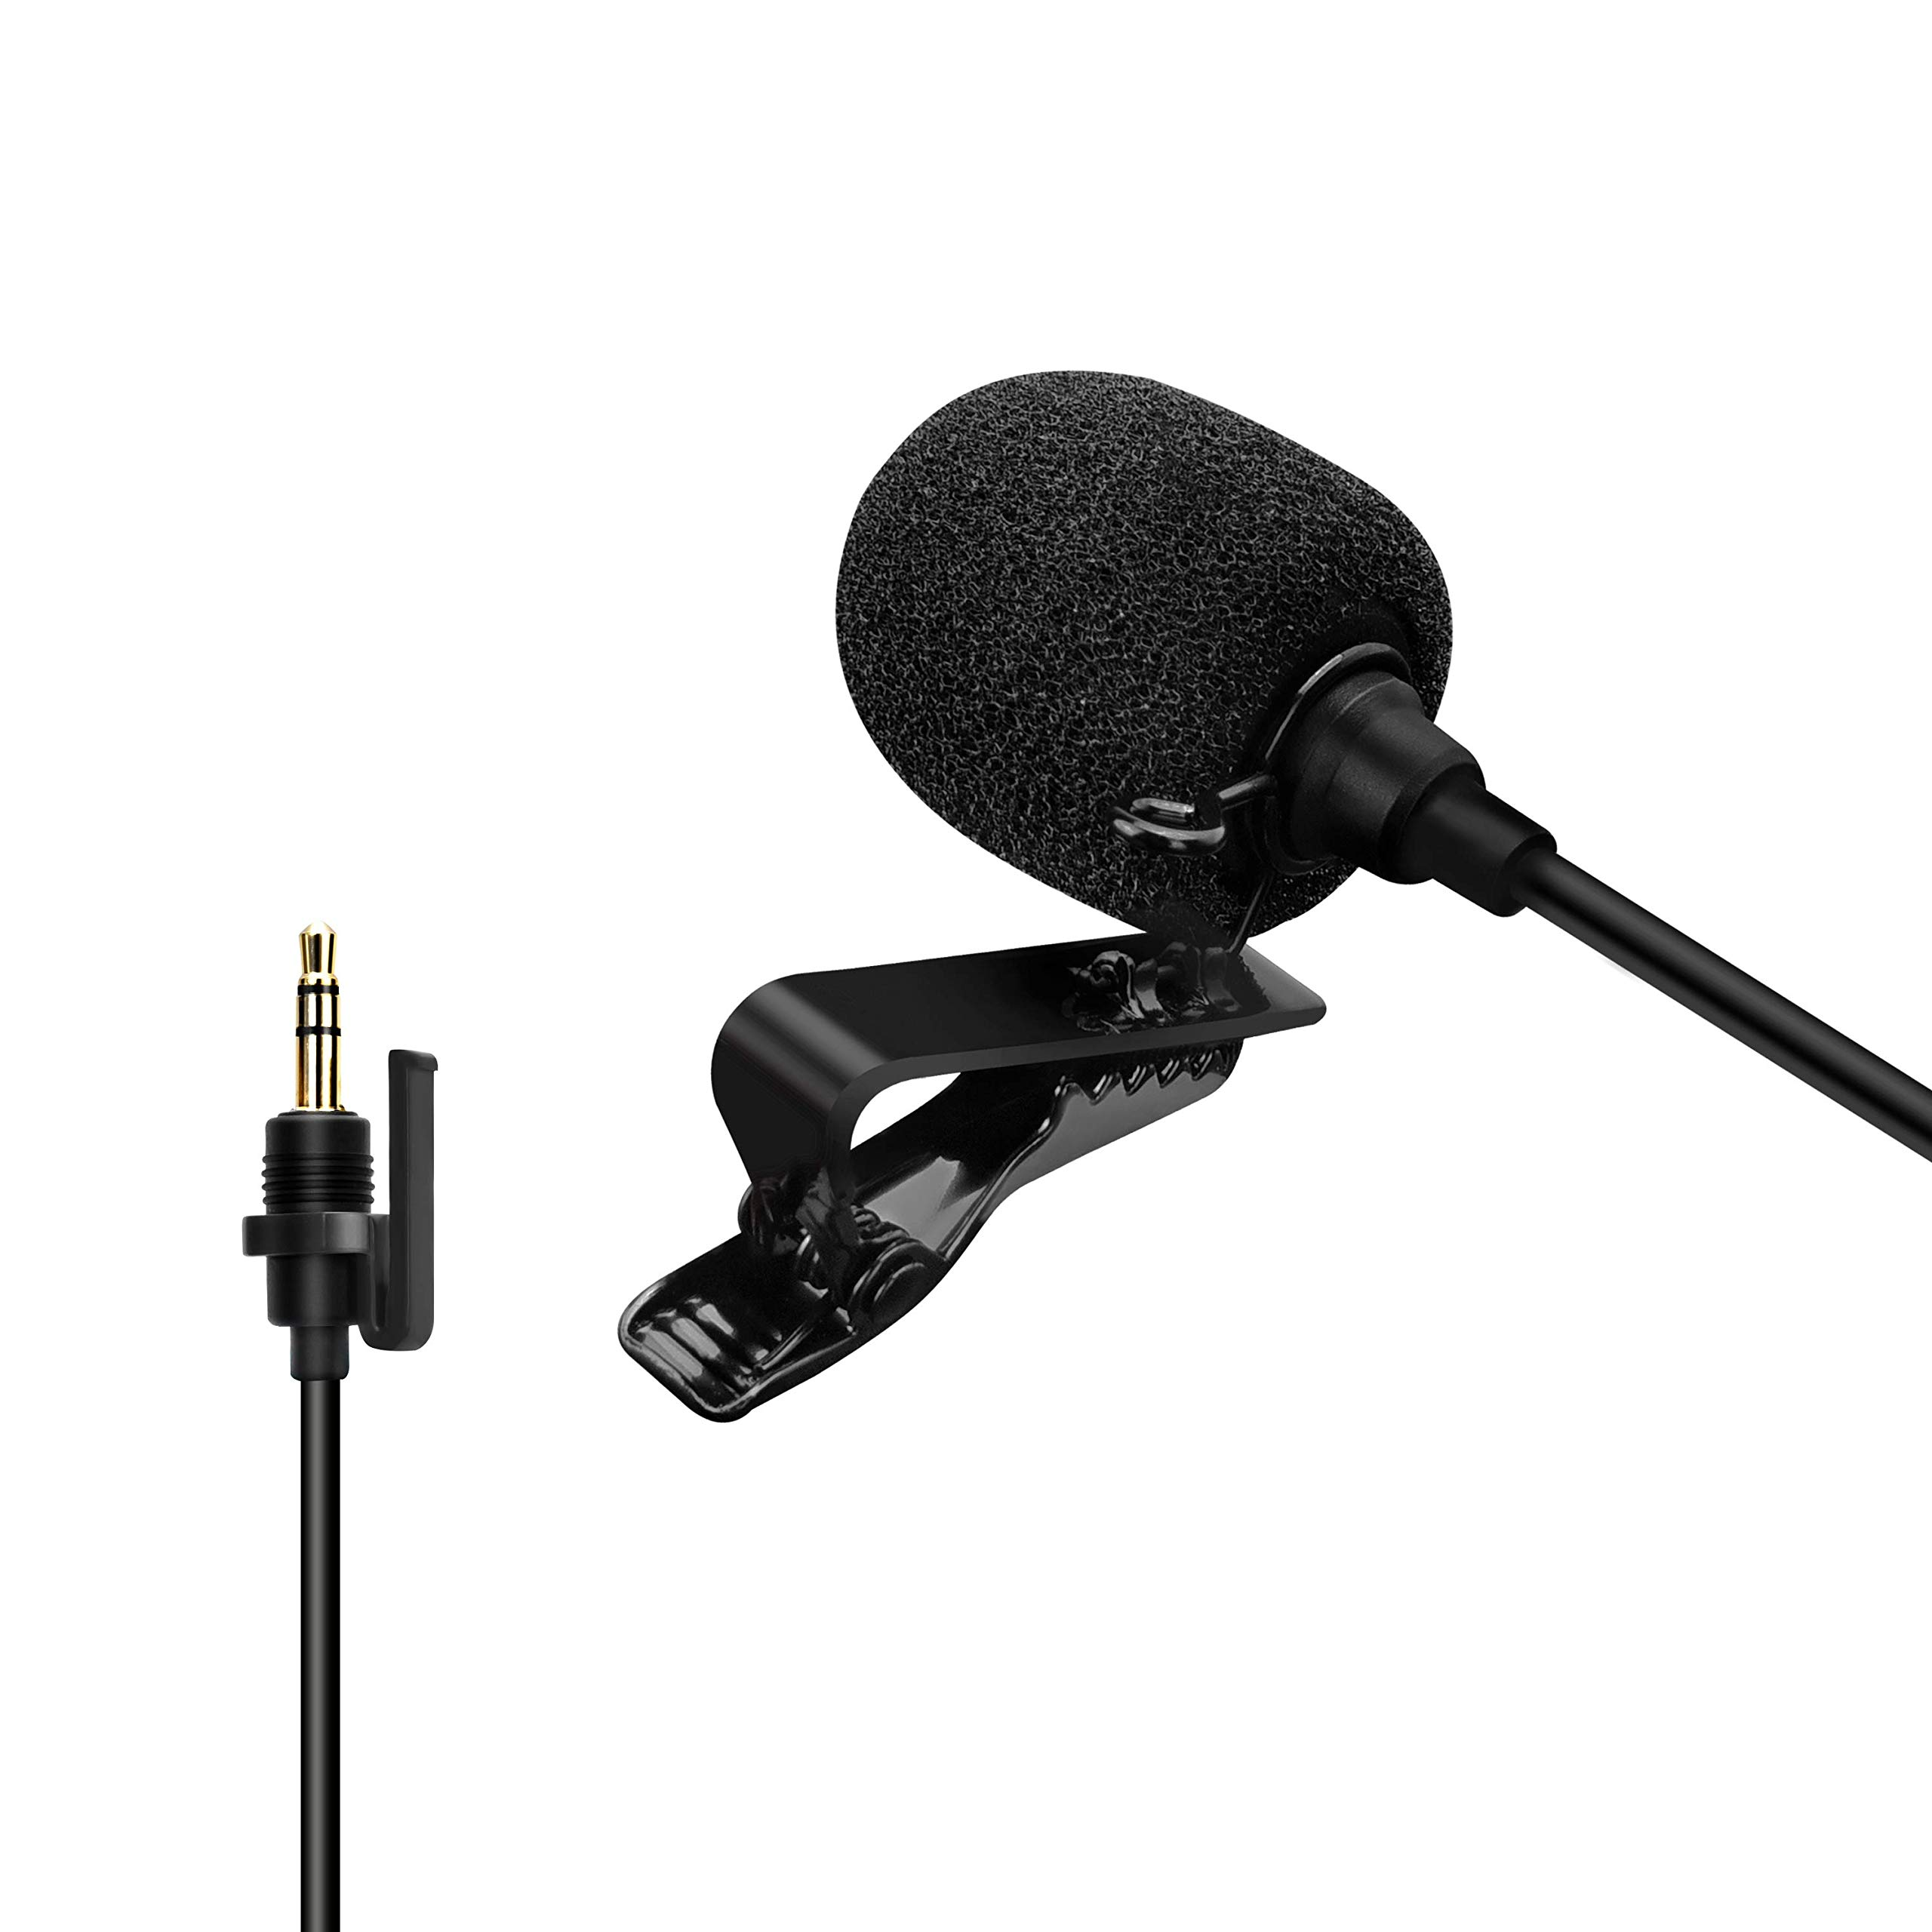 Comica CVM-SM-O1 Professional Lavalier Lapel Microphone, Omnidirectional 3.5mm TRS Clip-on Condenser Mic Compatible with DSLR Camera, Comica BoomX-D, Sennheiser, and Other Wireless Transmitter(3.94ft)